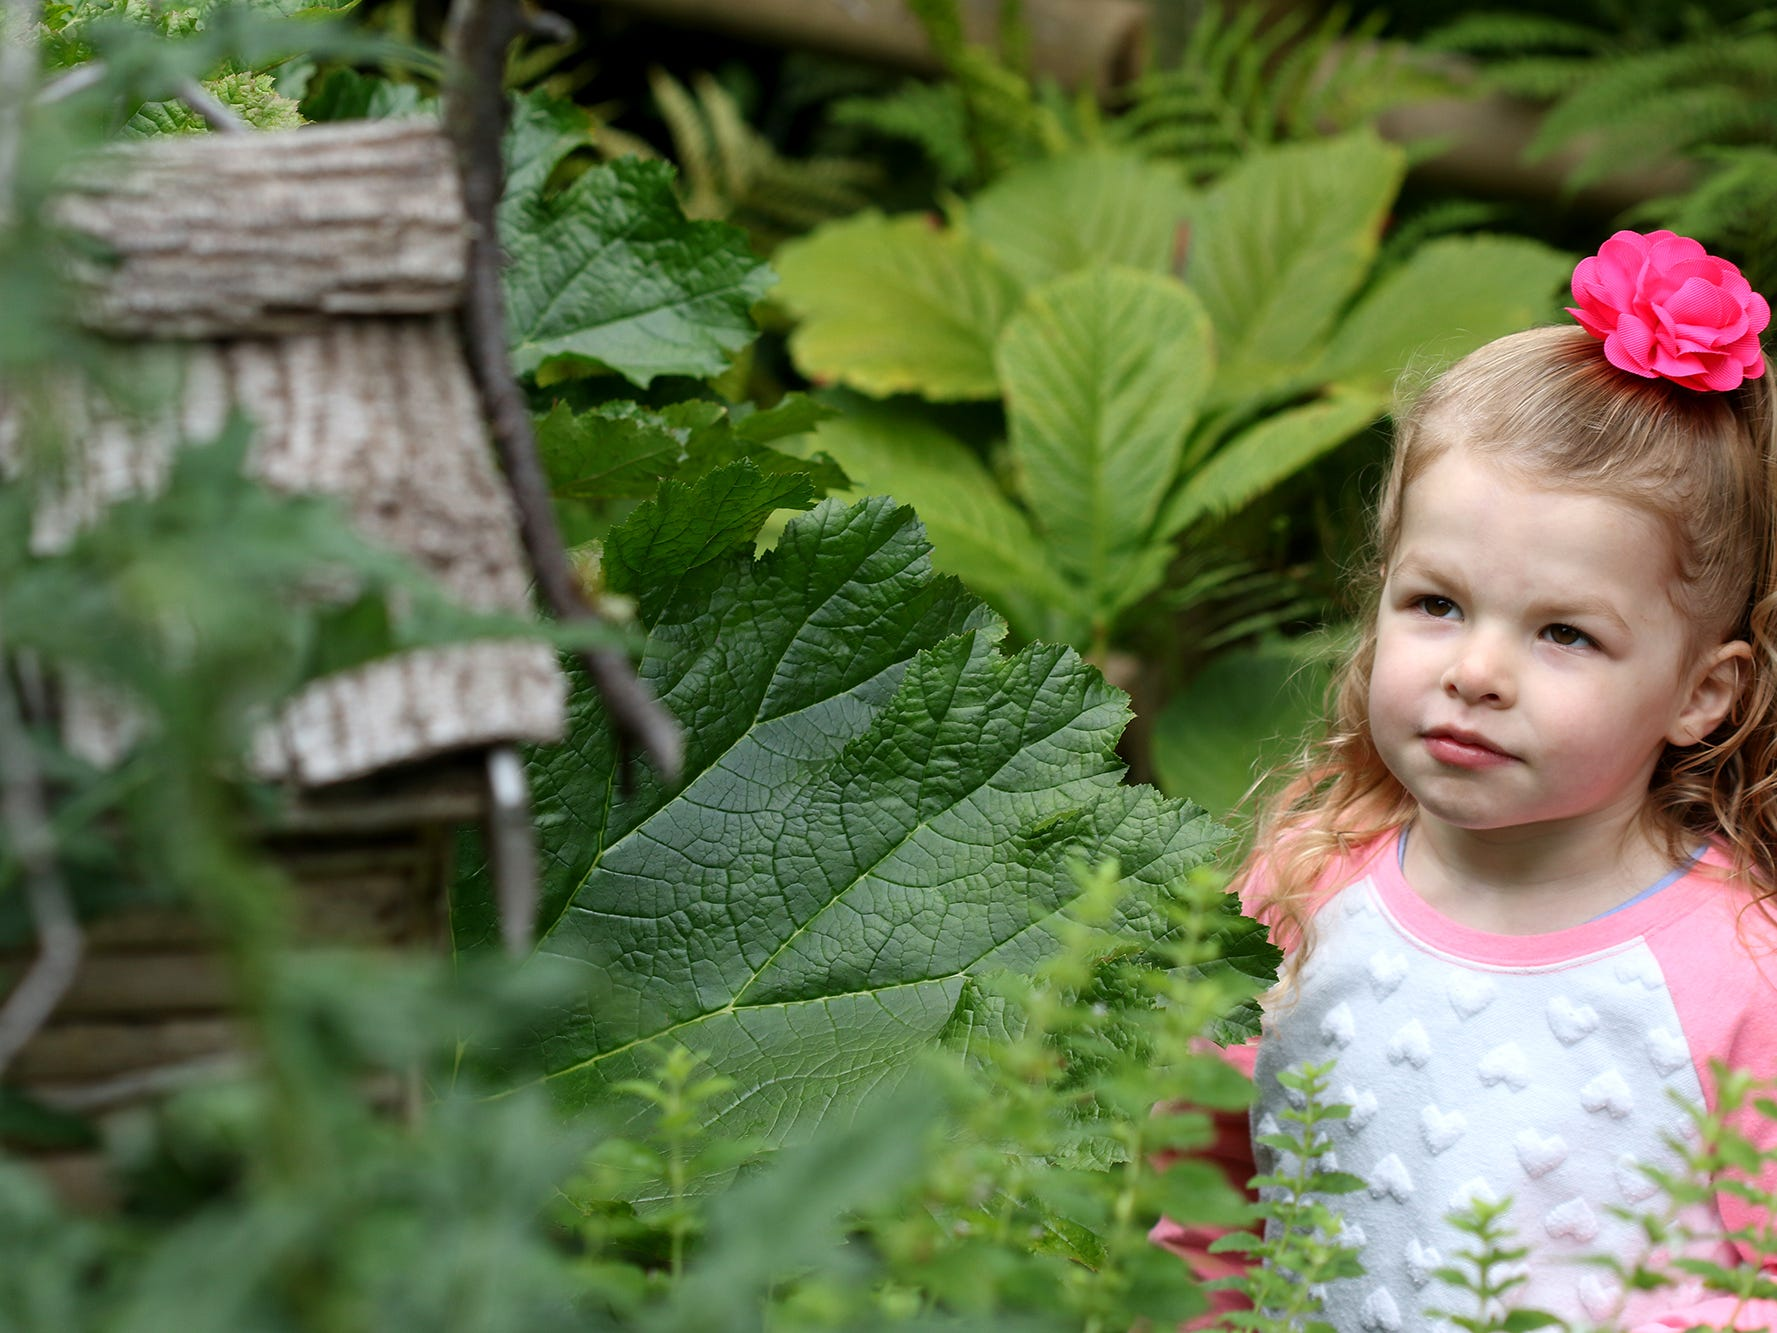 Tessa Clough, 3, looks over a fairy hut at Anna Smith Garden.